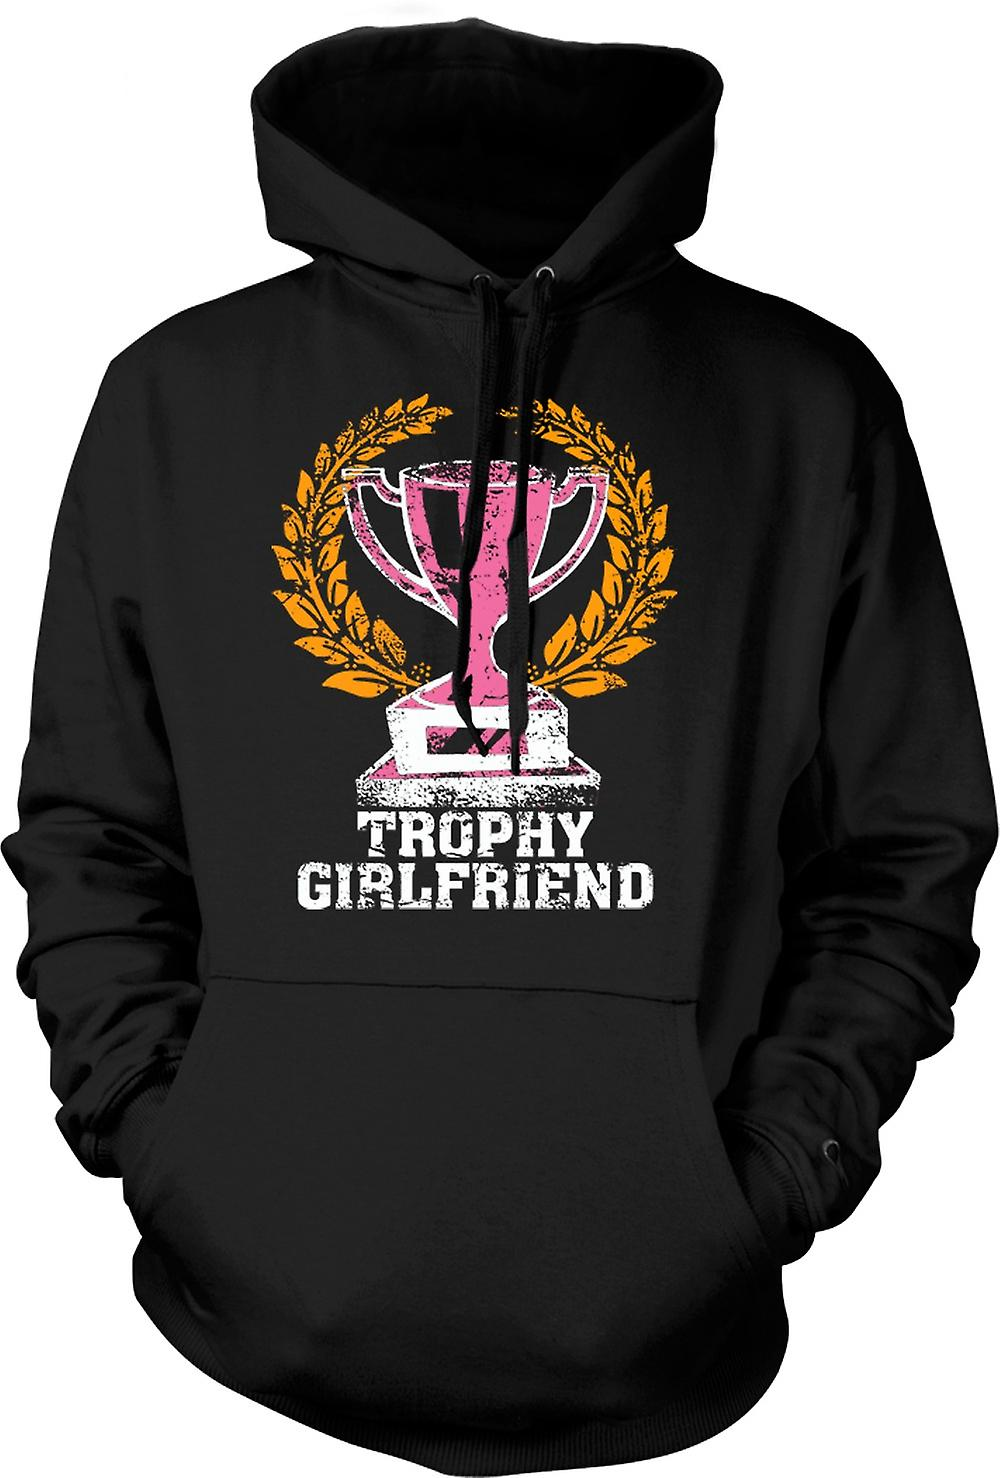 Mens Hoodie - Trophy Girlfriend - Funny